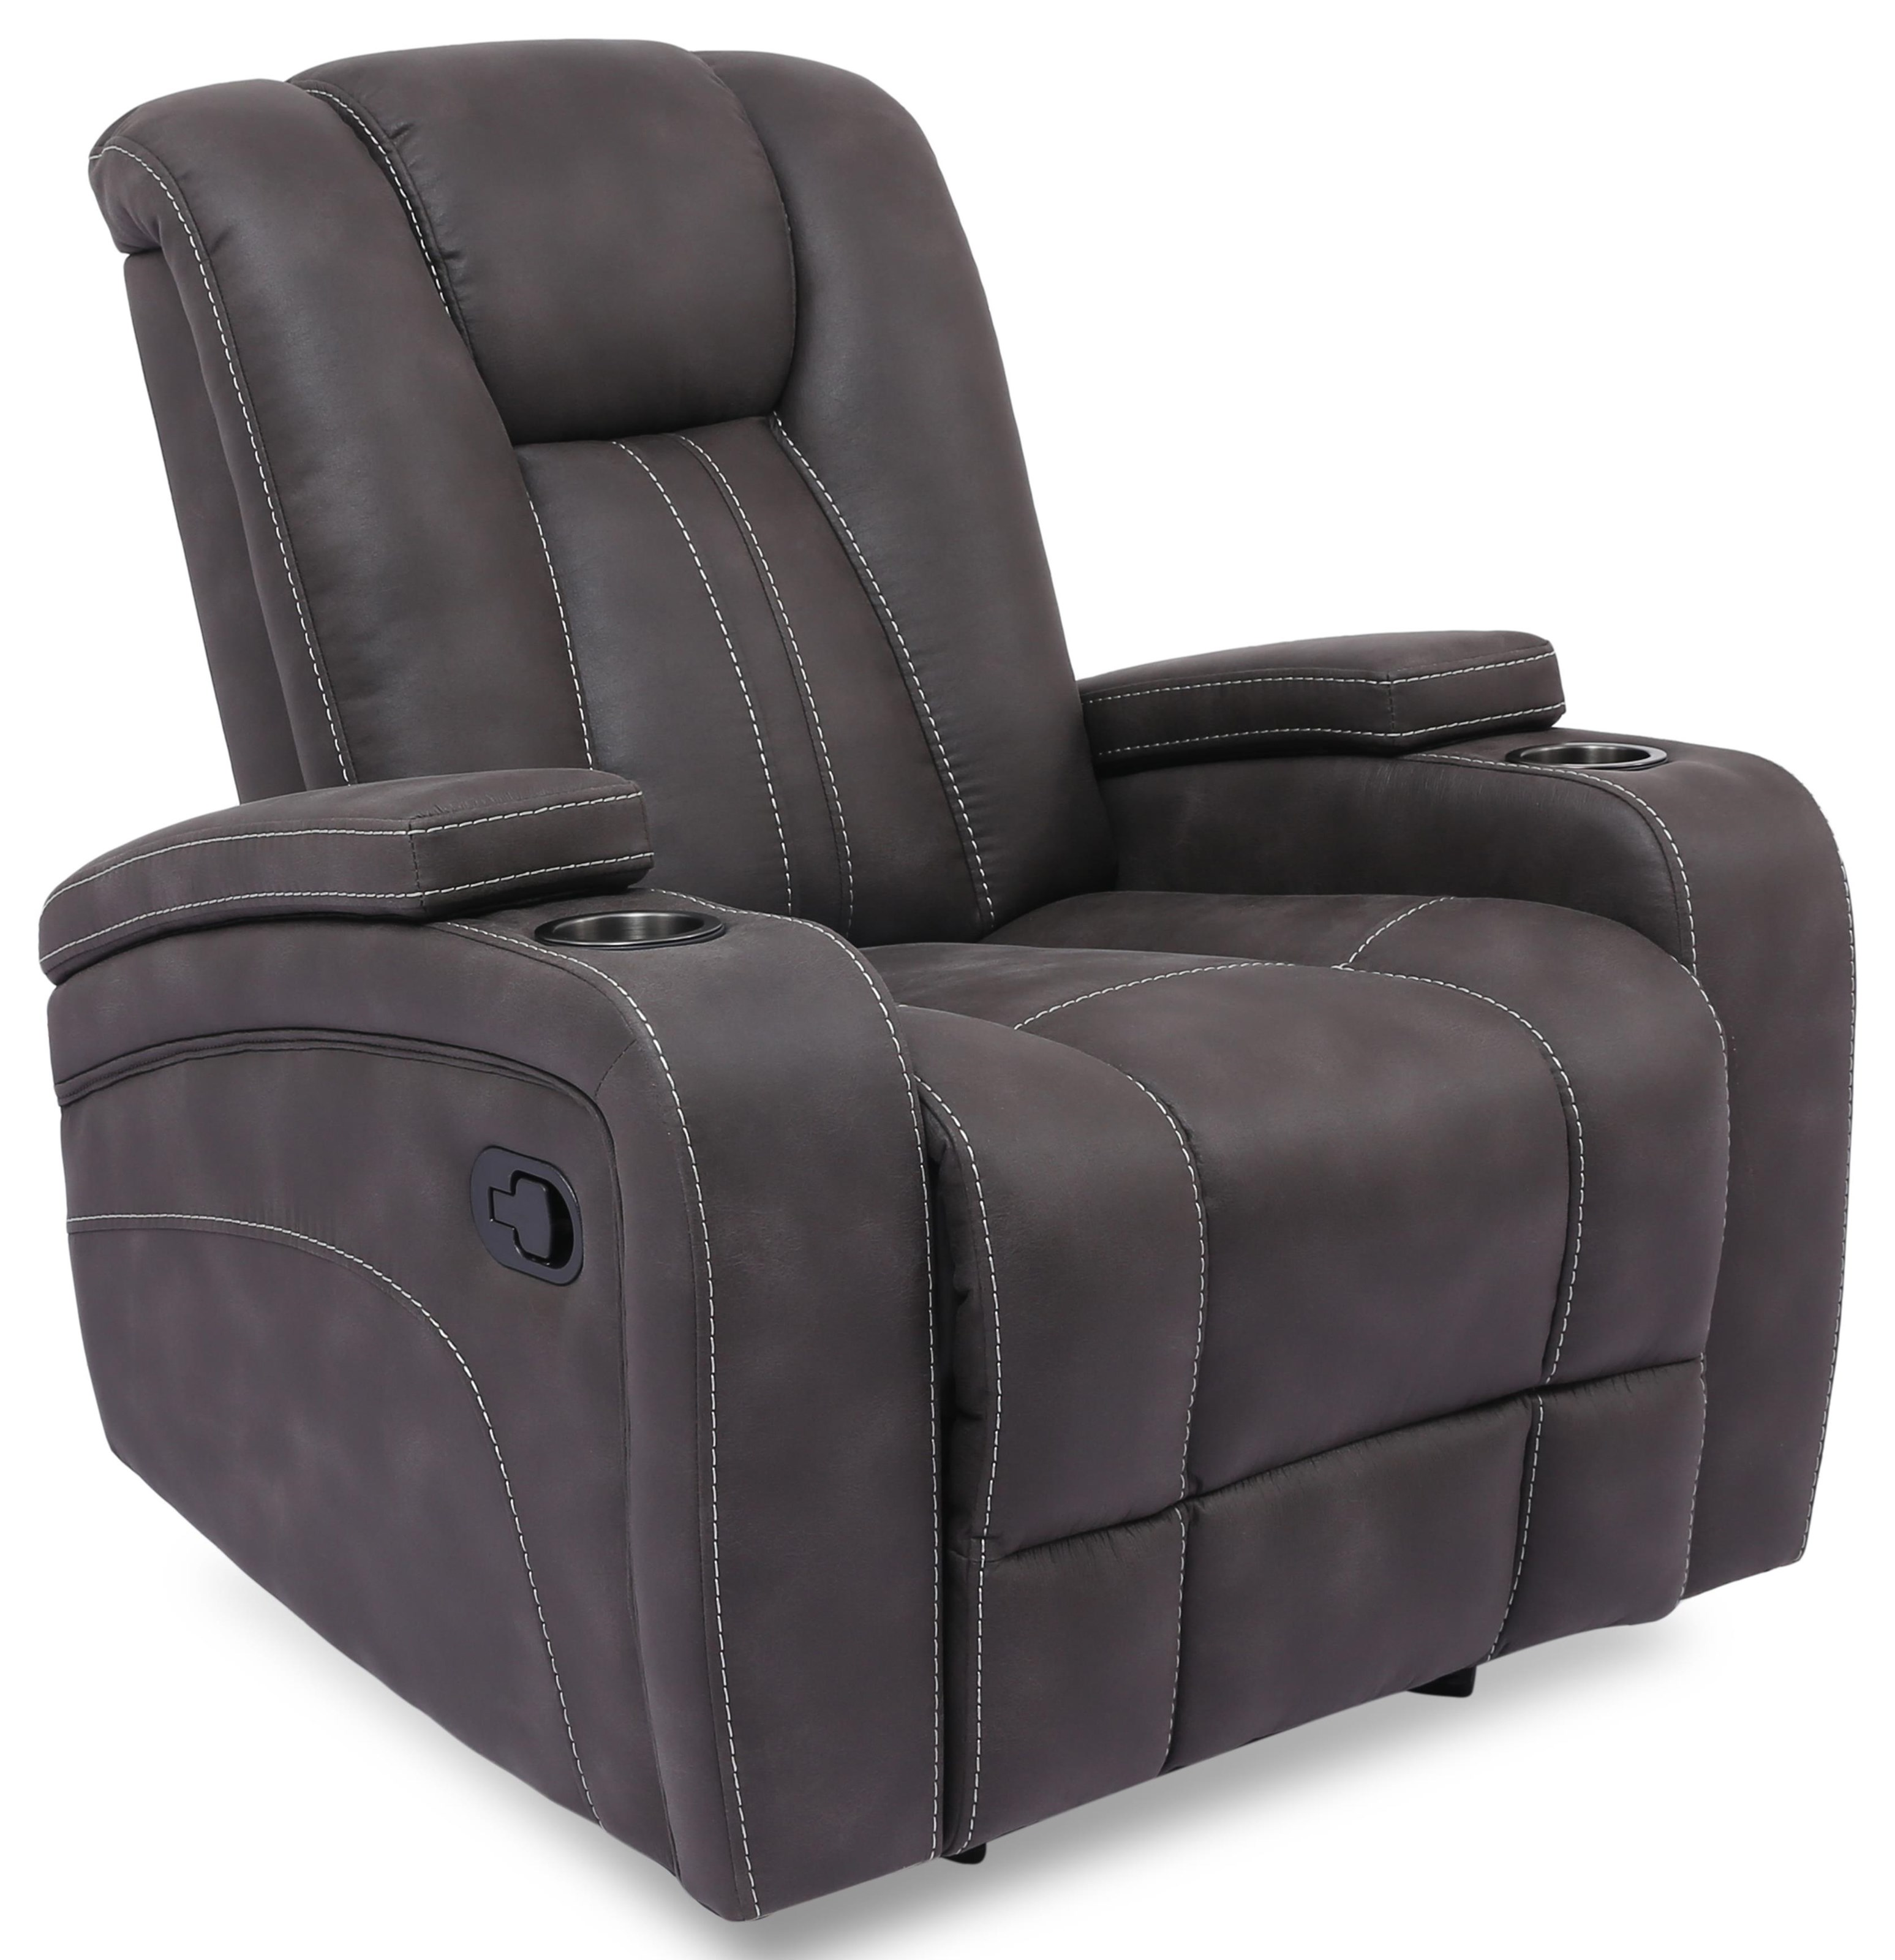 9990M Glider Recliner by Cheers at Furniture Fair - North Carolina